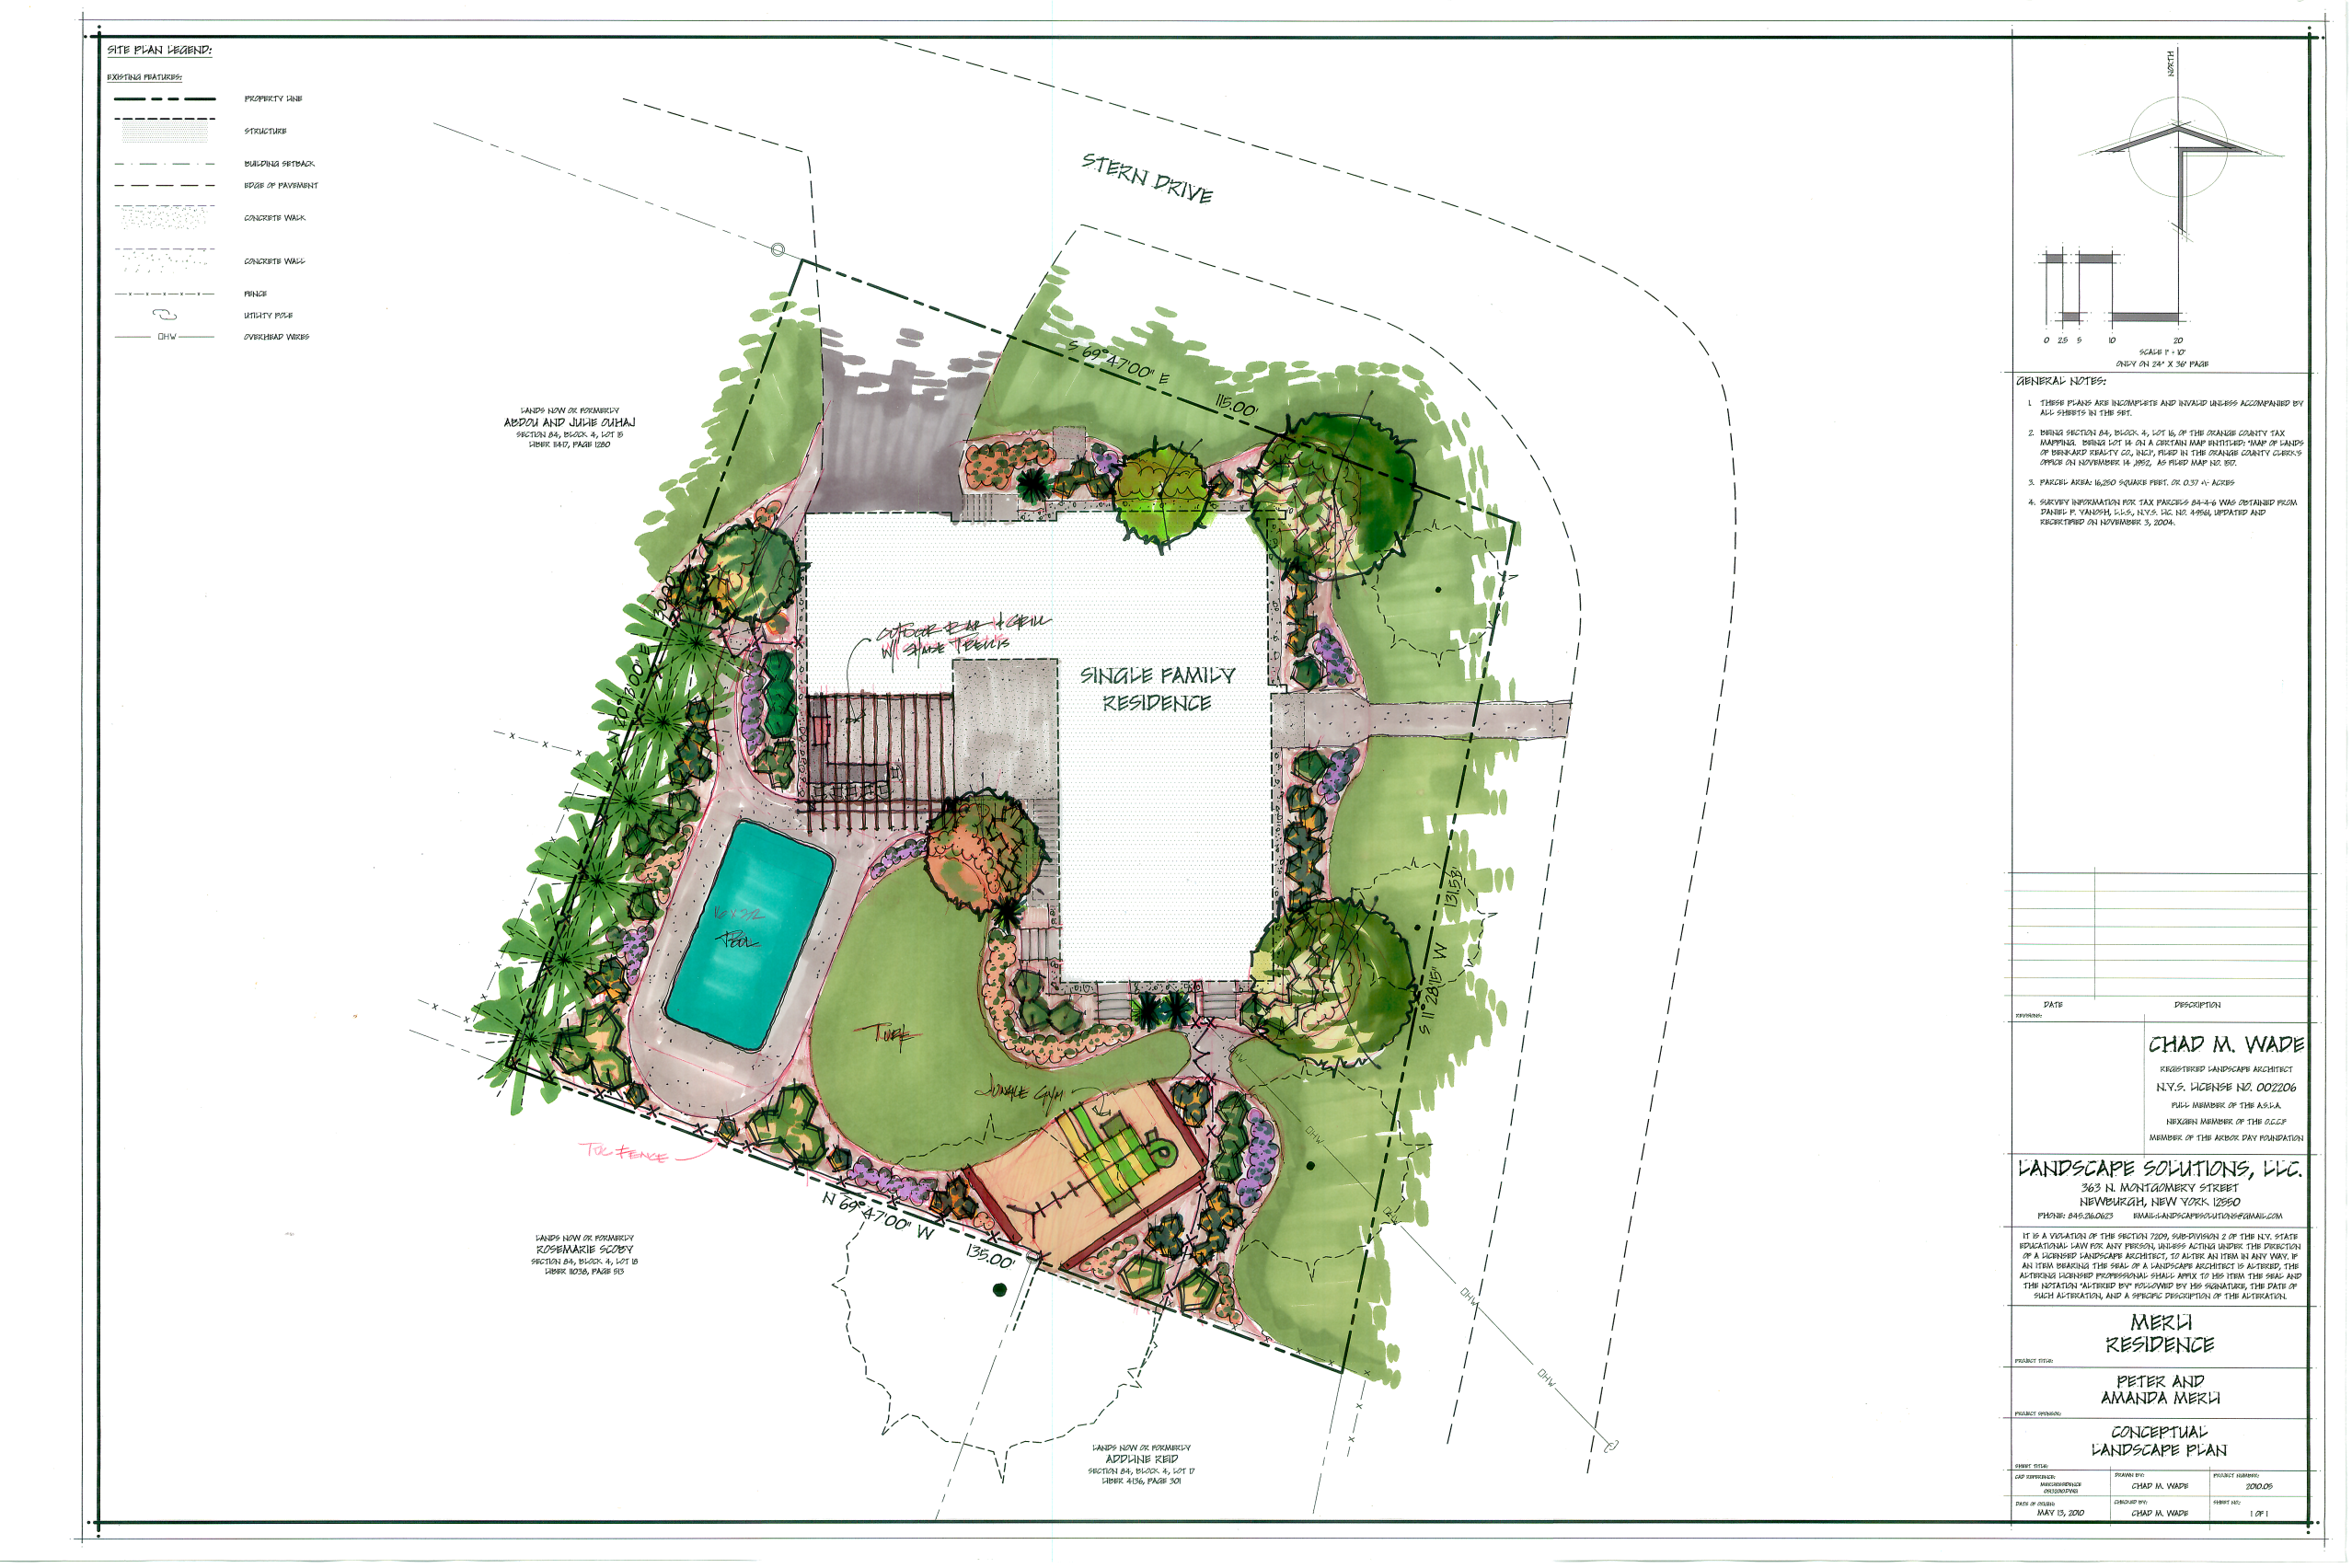 Residential landscape design drawings for Landscape blueprints